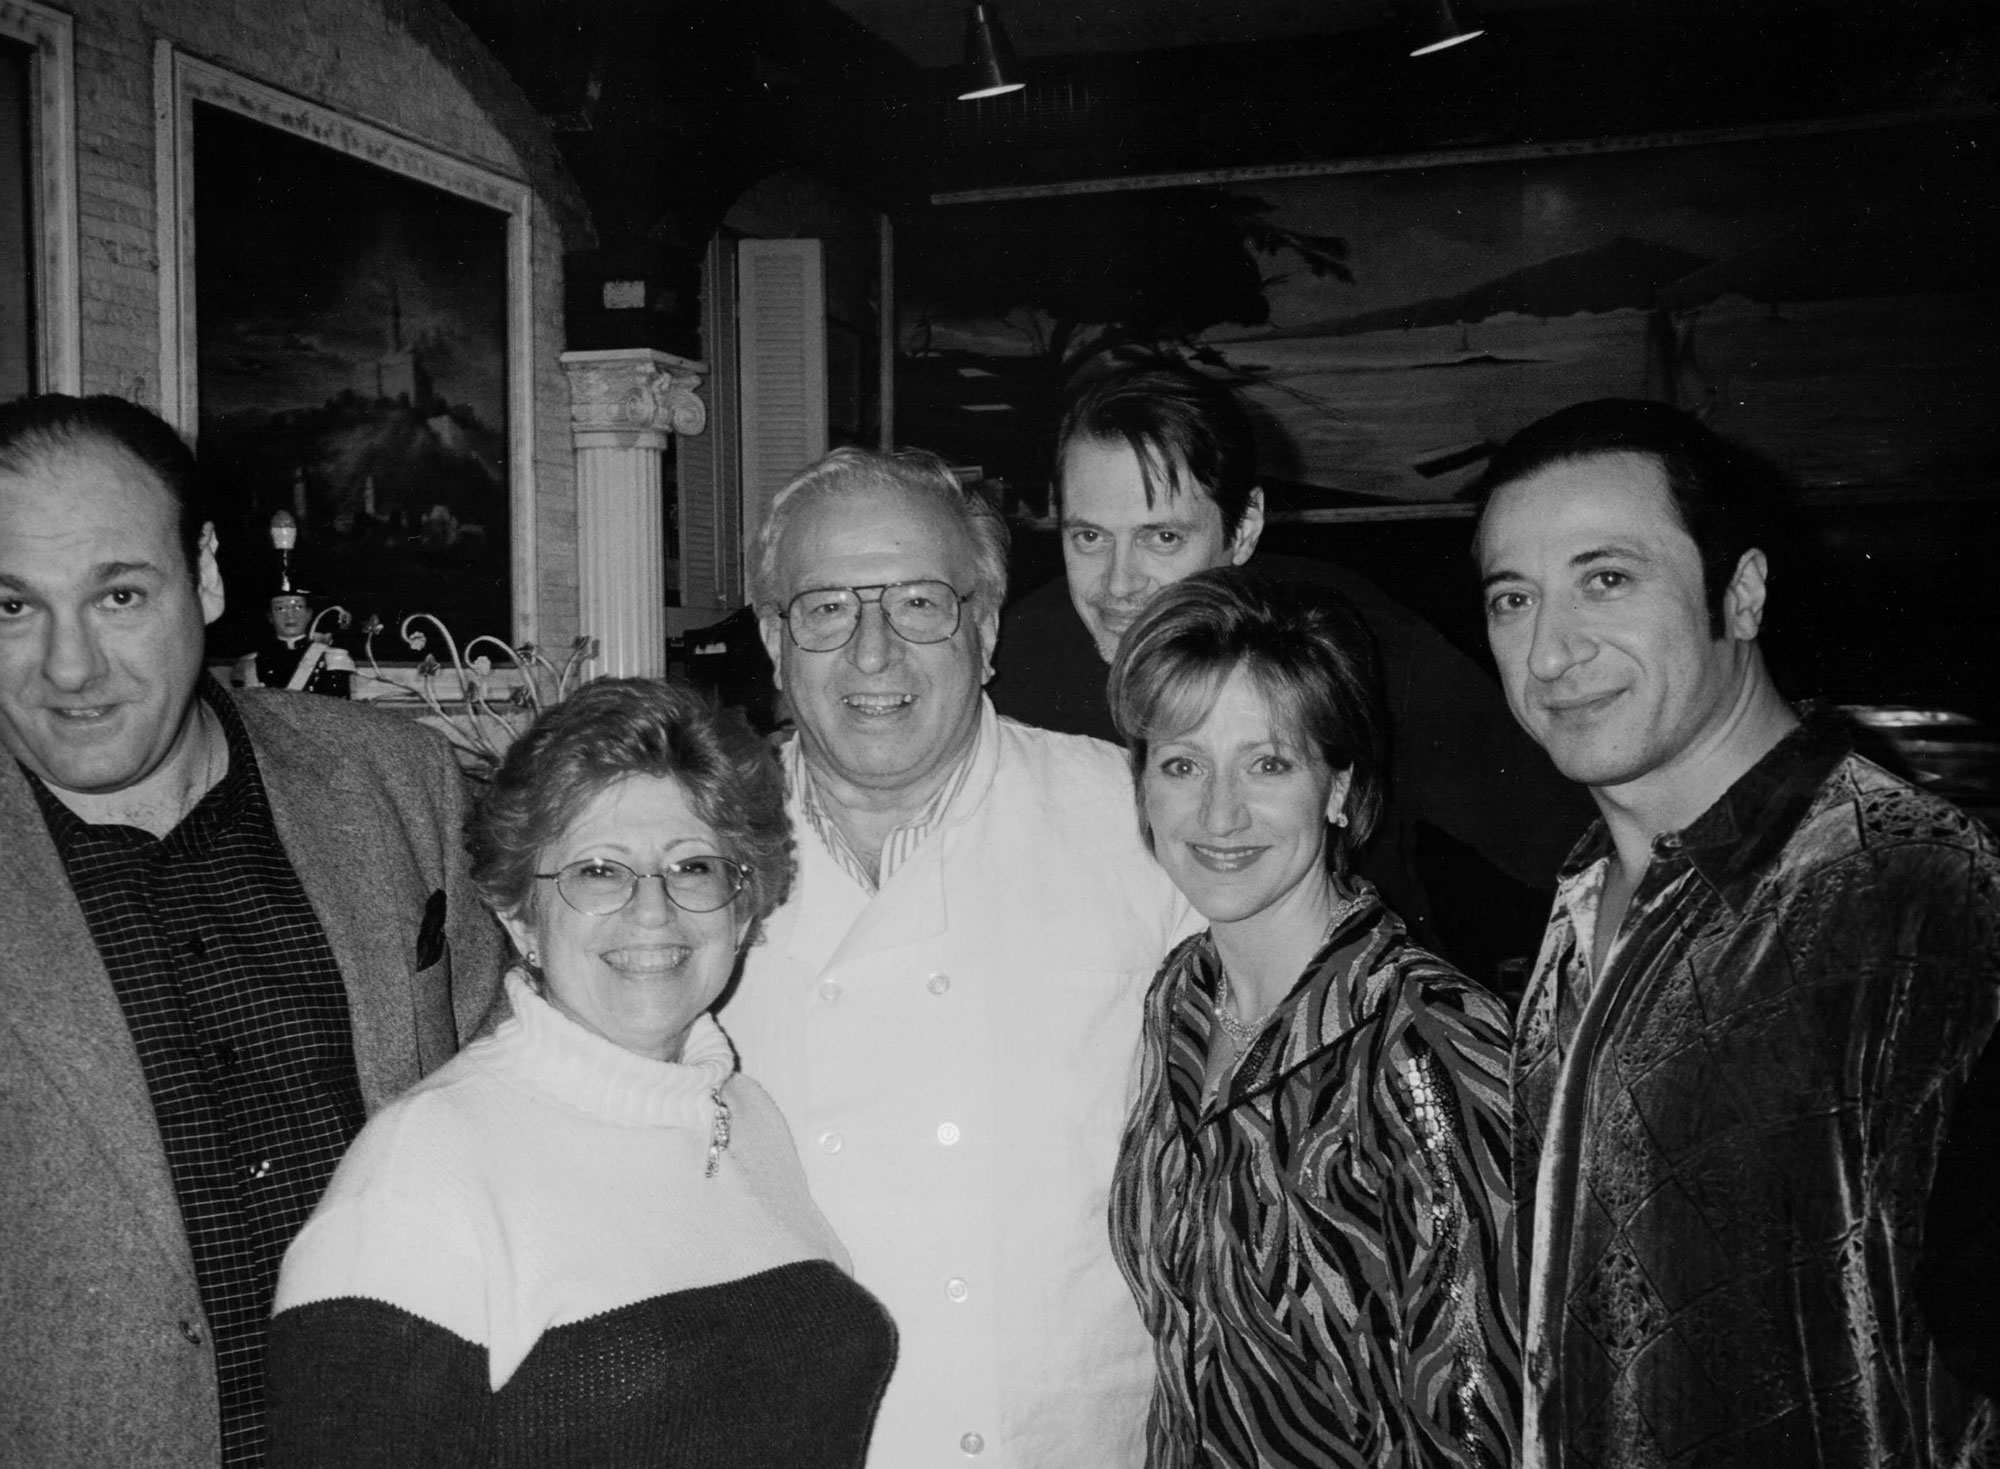 Mario's-Restaurant-with-some-of-The-Sopranos-Cast